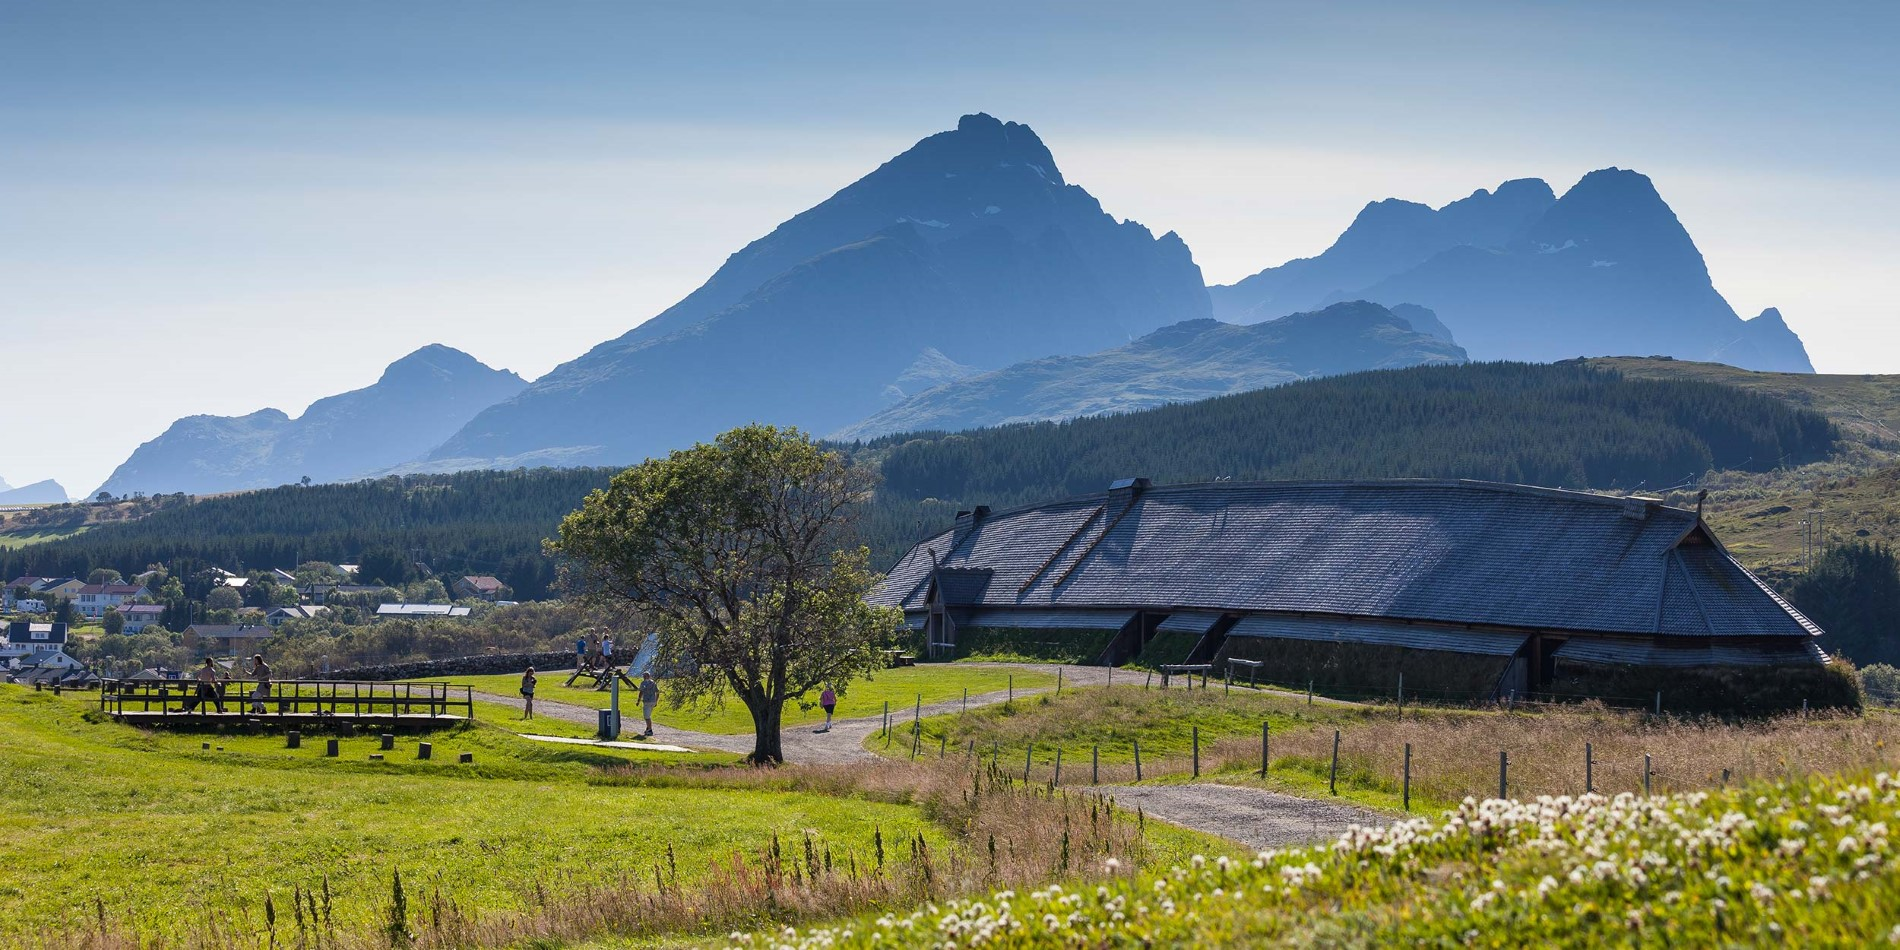 Join a Viking feast in the impressive reconstructed Viking longhouse at Borg in Lofoten